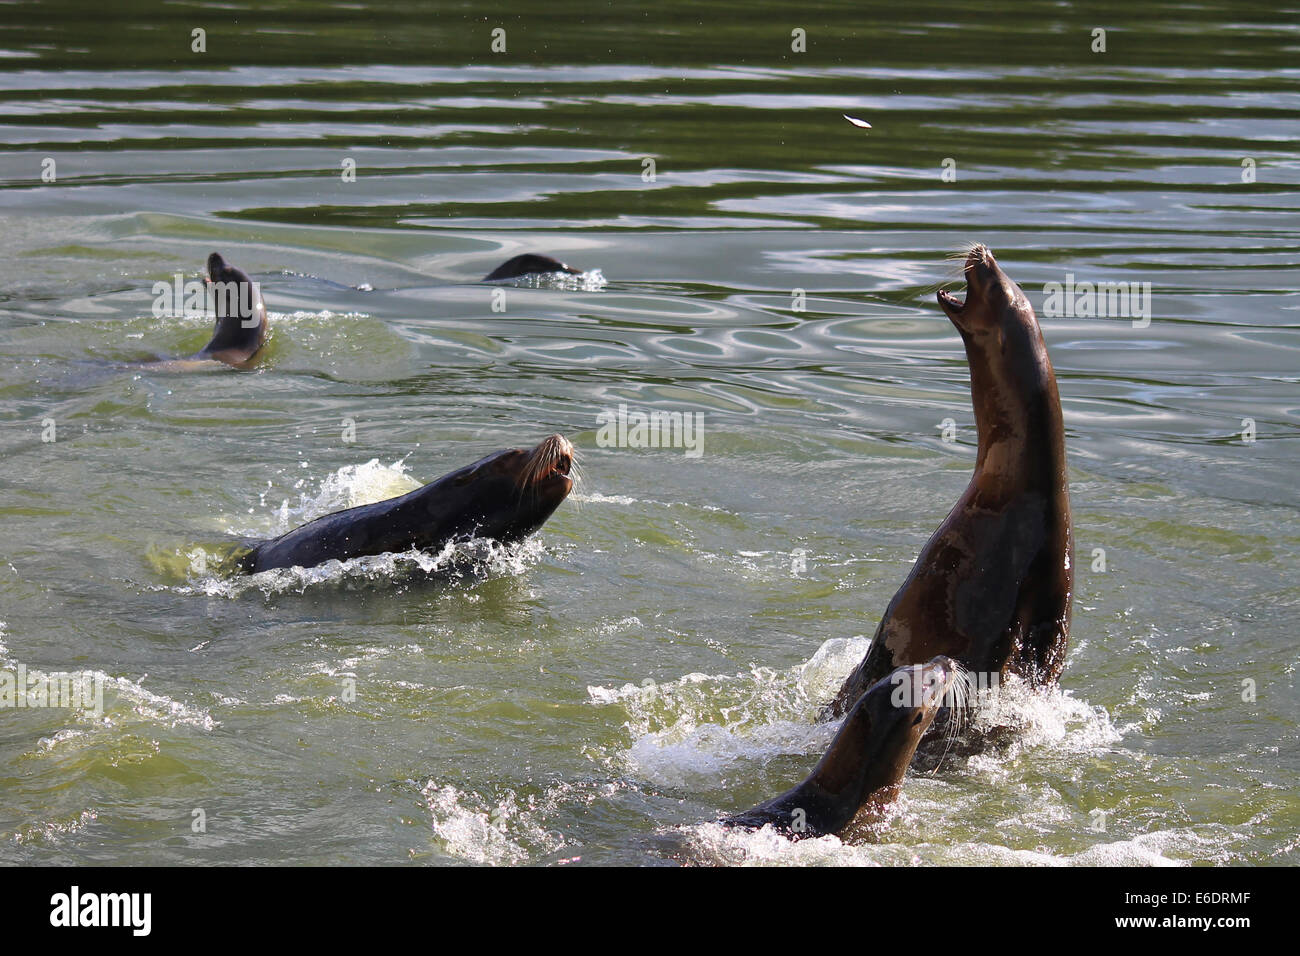 Californian Sea Lions swimming for food with one leaping out to catch a fish. - Stock Image